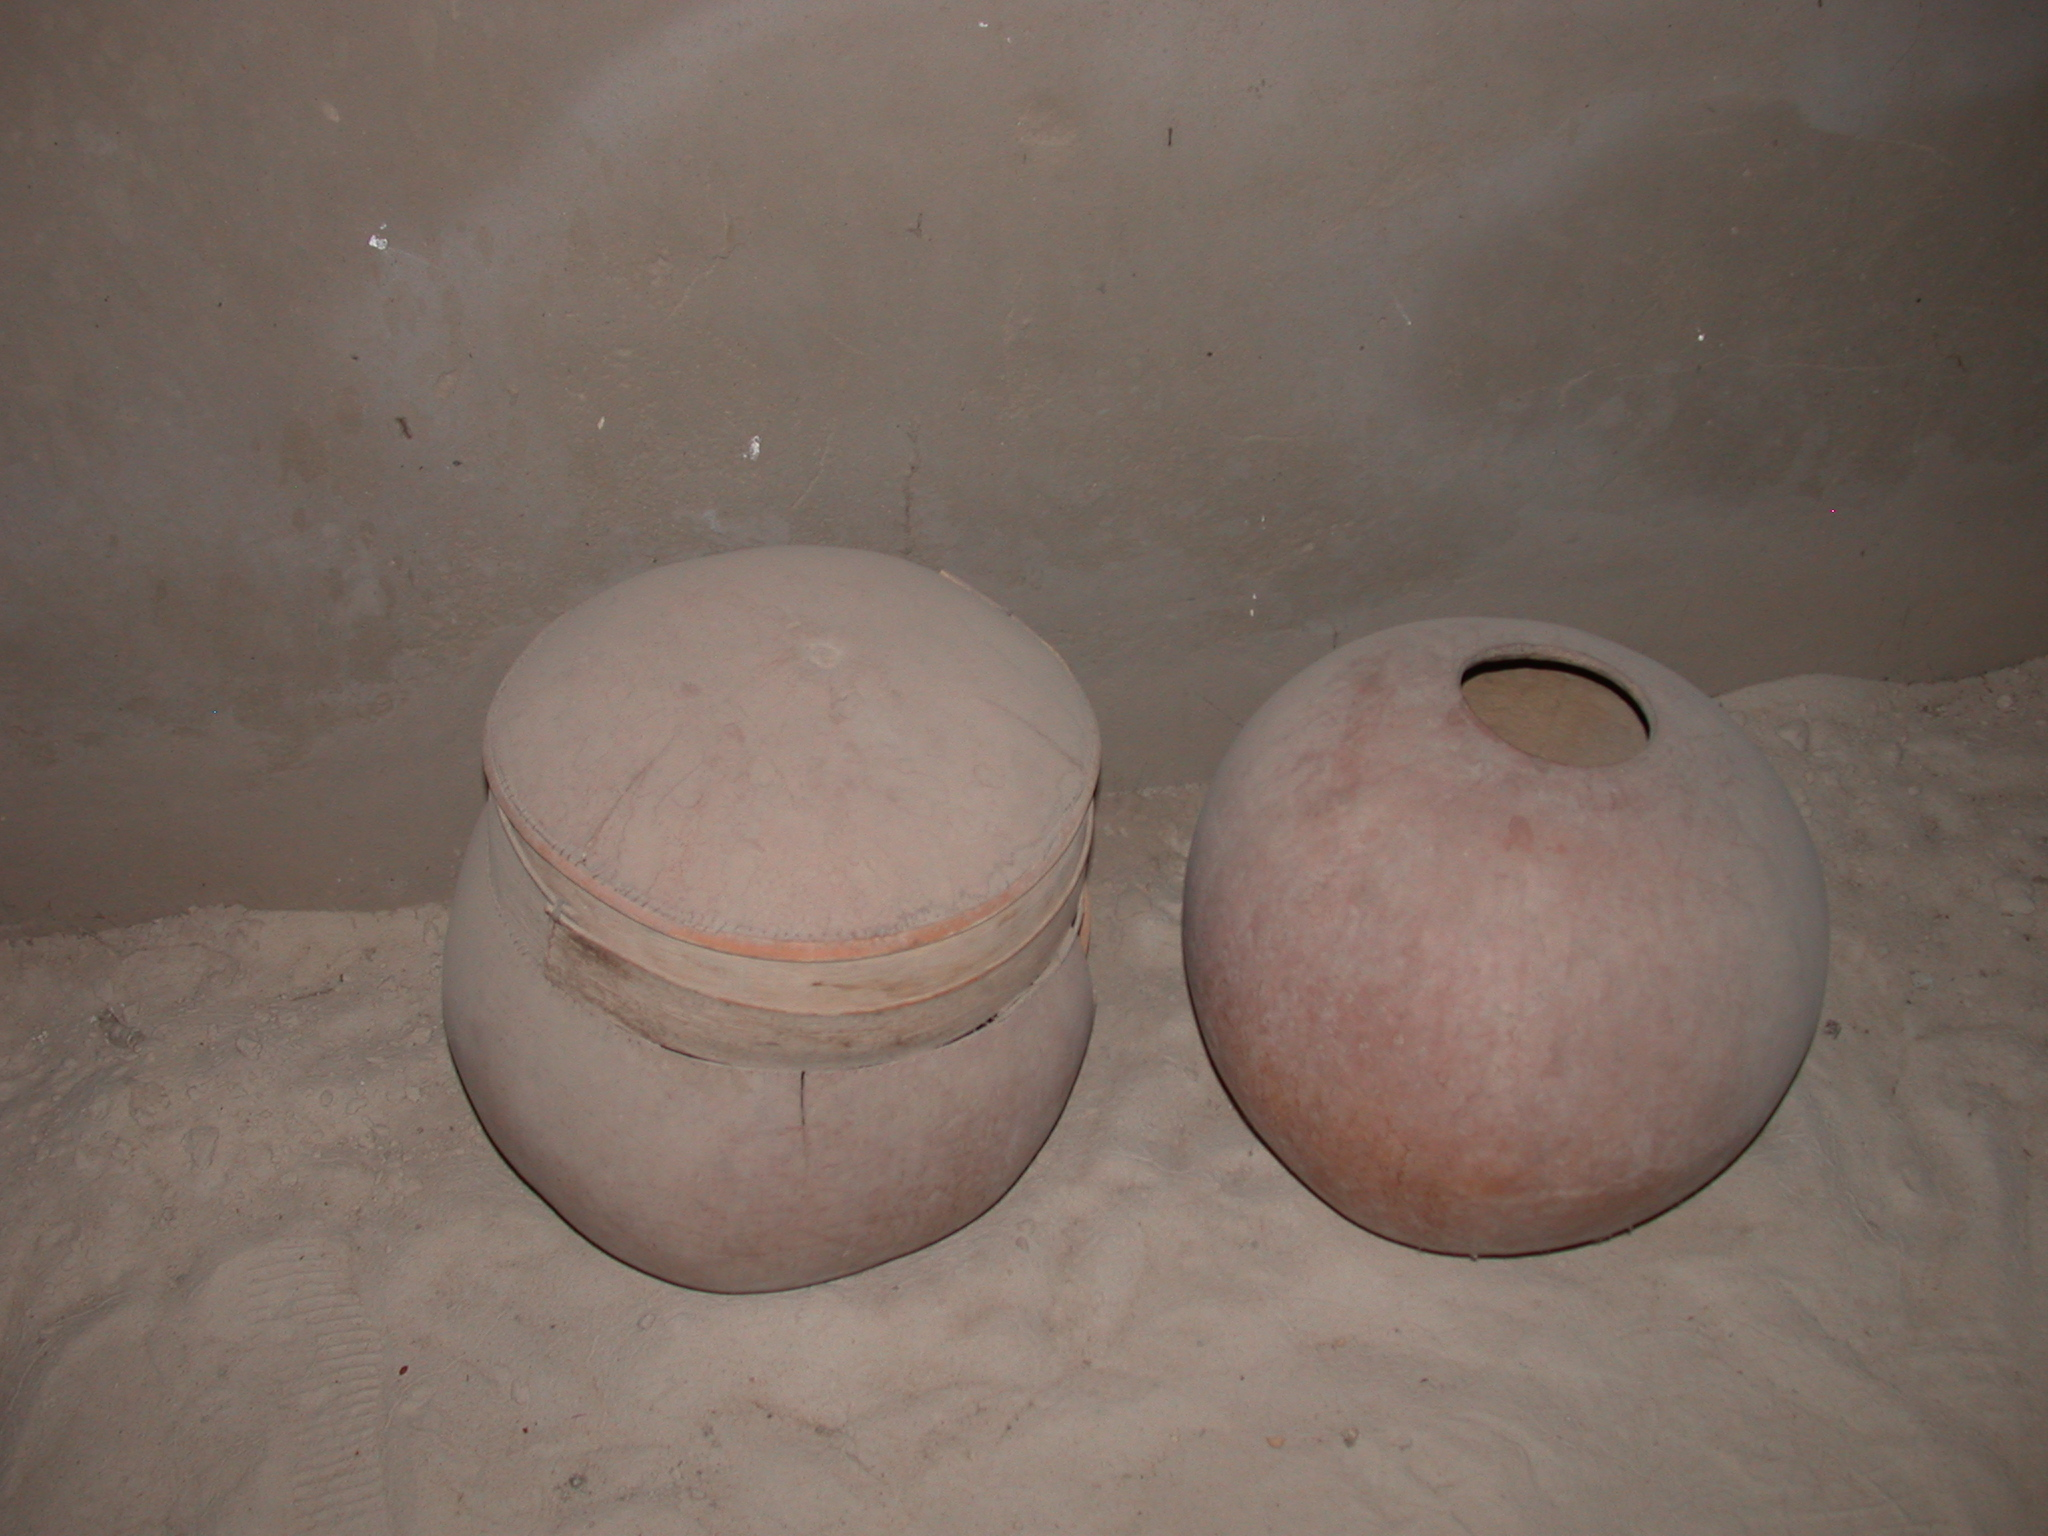 Containers for Storage of Agricultural Products, Timbuktu Ethnological Museum, Timbuktu, Mali